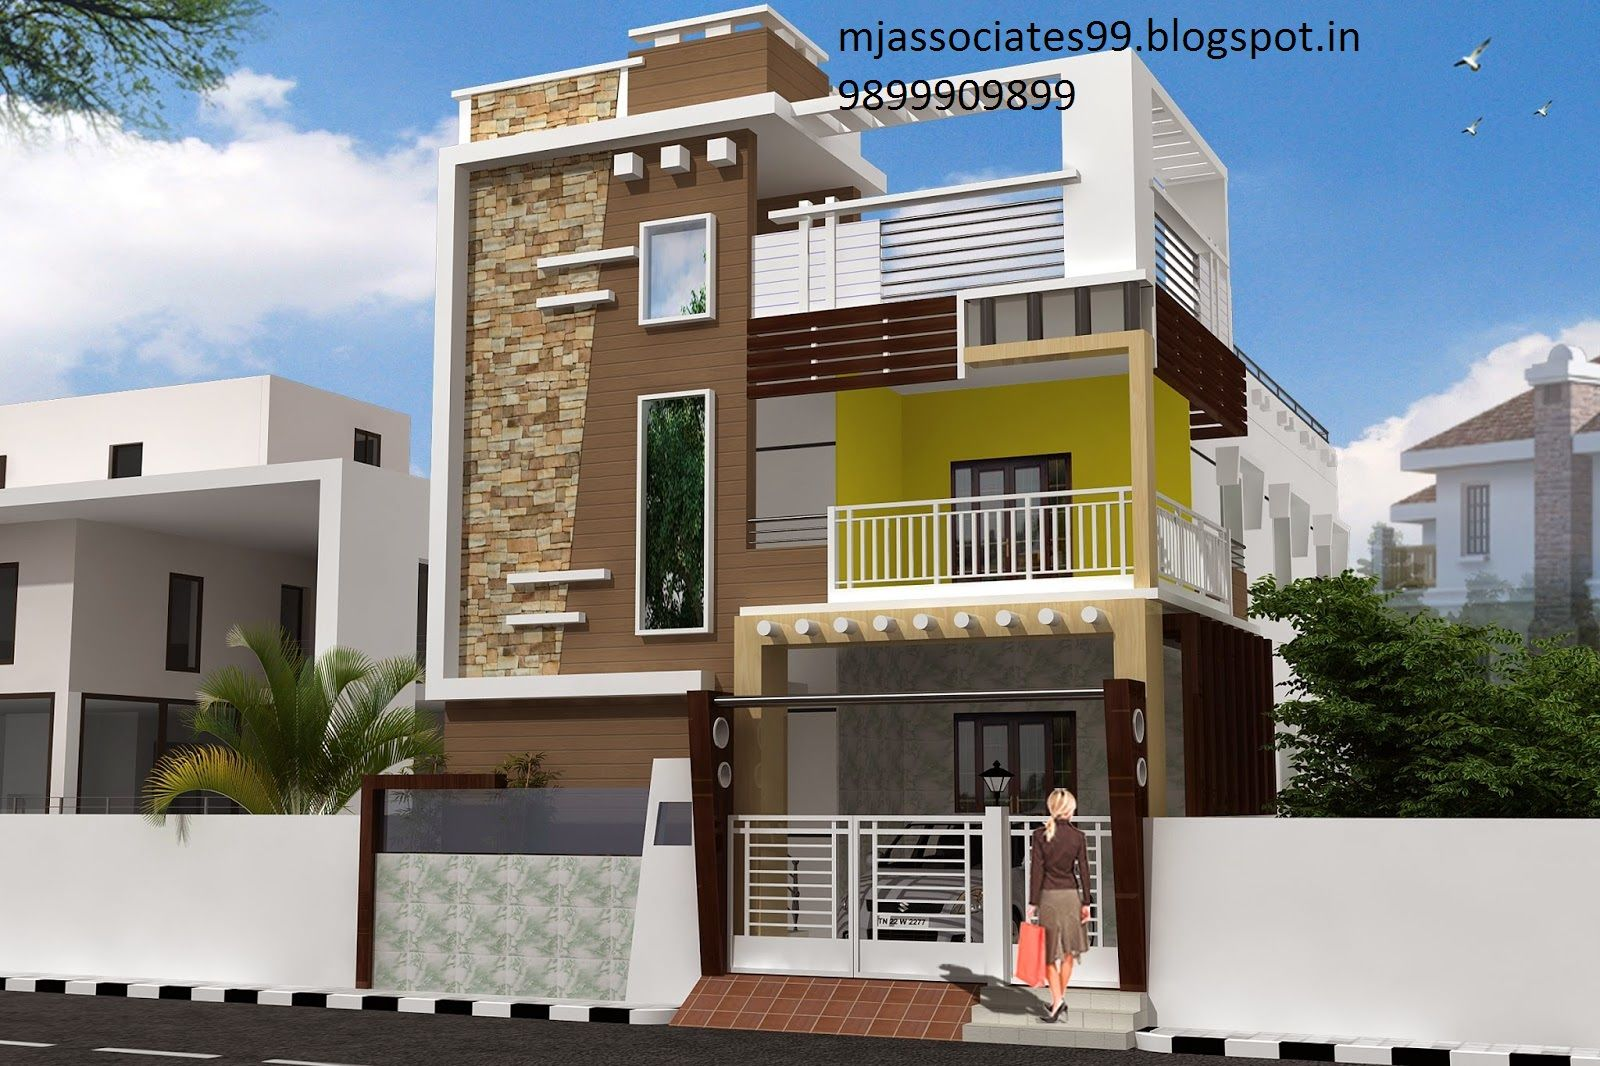 Spacious room in uttam nagar bank facing flat ready near by west metro station happyholi new construction holi adjoining hall also nice house elevation design on designs rh pinterest